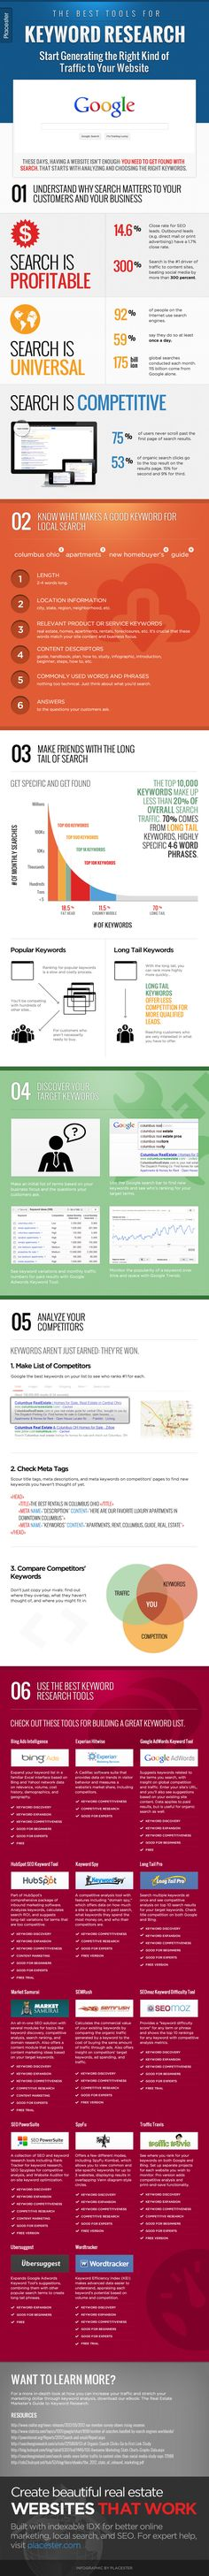 Great infographic on using search to generate the right kind of traffic